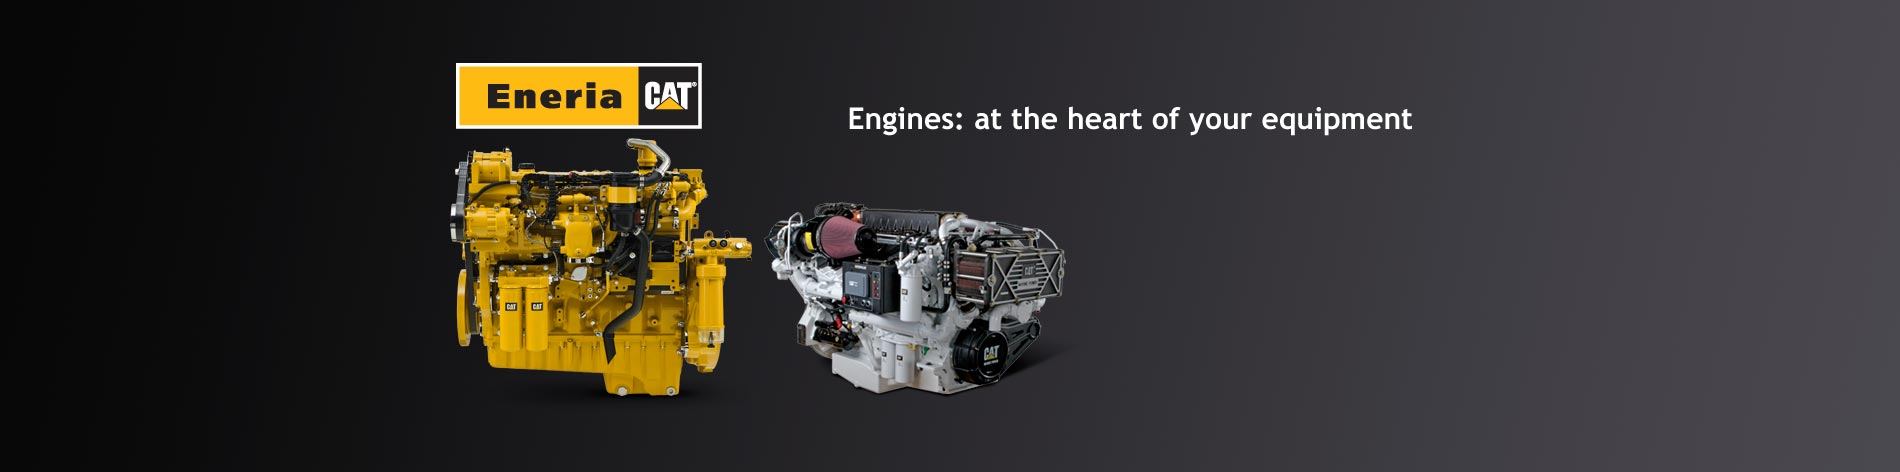 We conduct studies on the best ways to install and adapt Caterpillar engines designed for a wide range of applications in industry, rail transportation, agriculture, oil & gas exploration and development and marine engines.